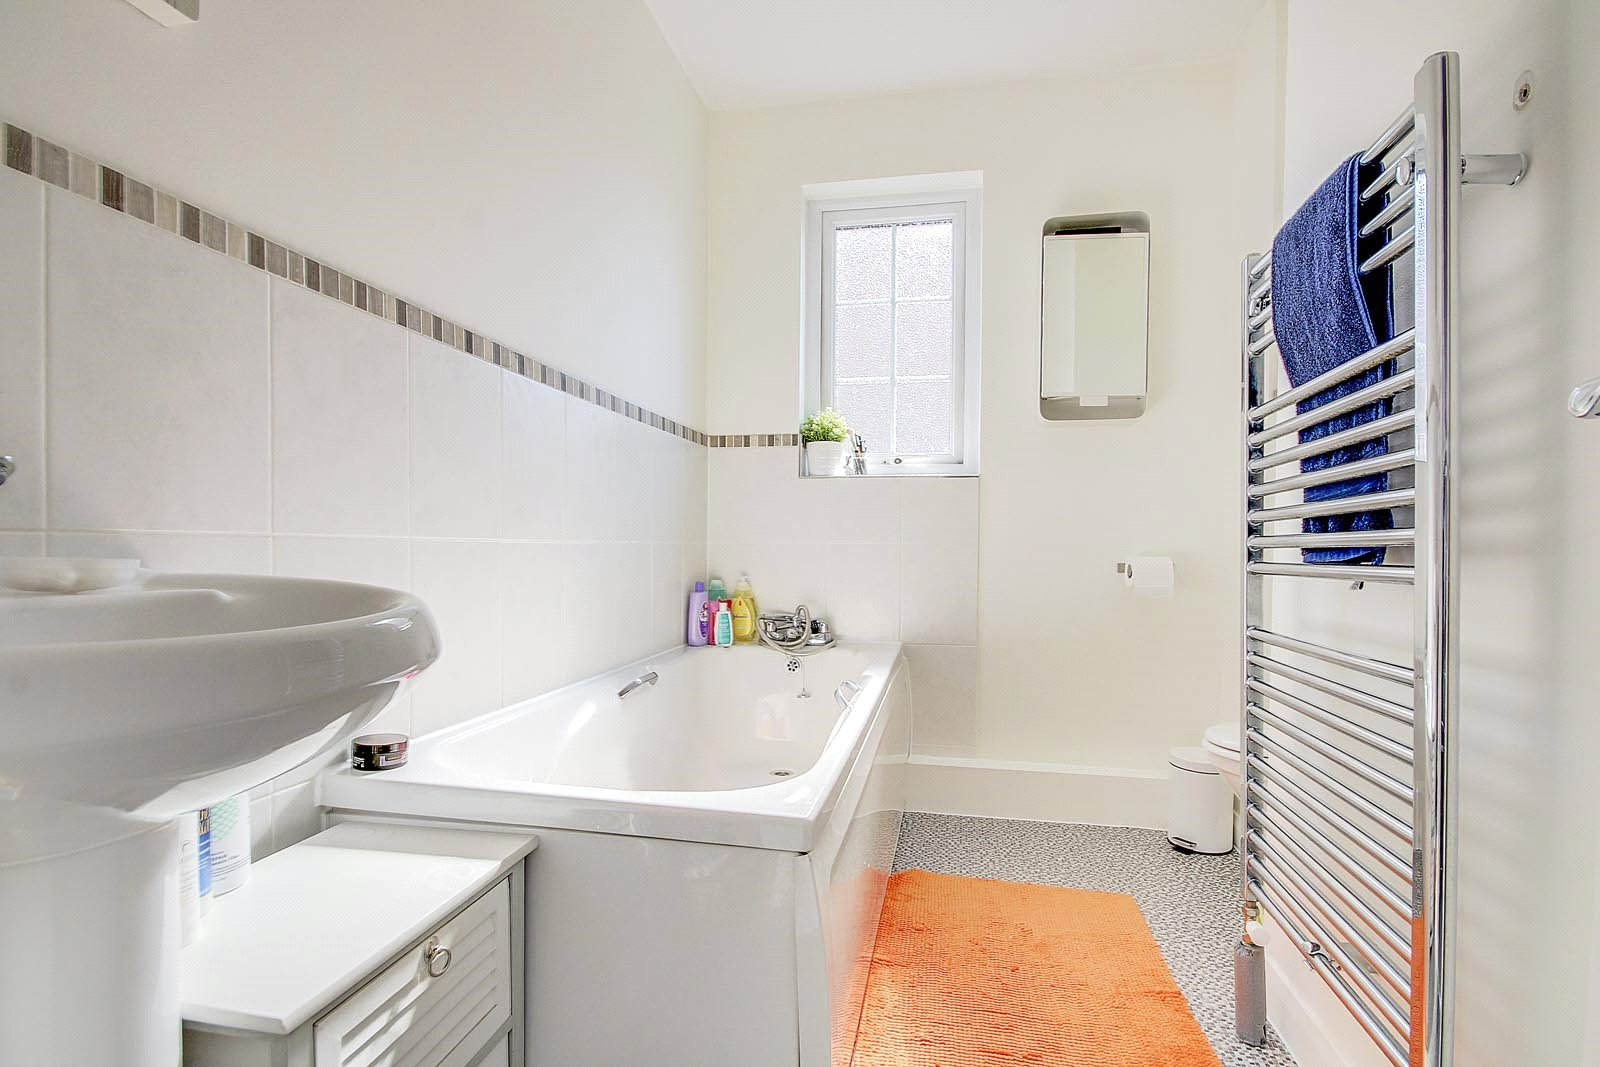 3 bed house for sale in Carvel Way, Littlehampton 6